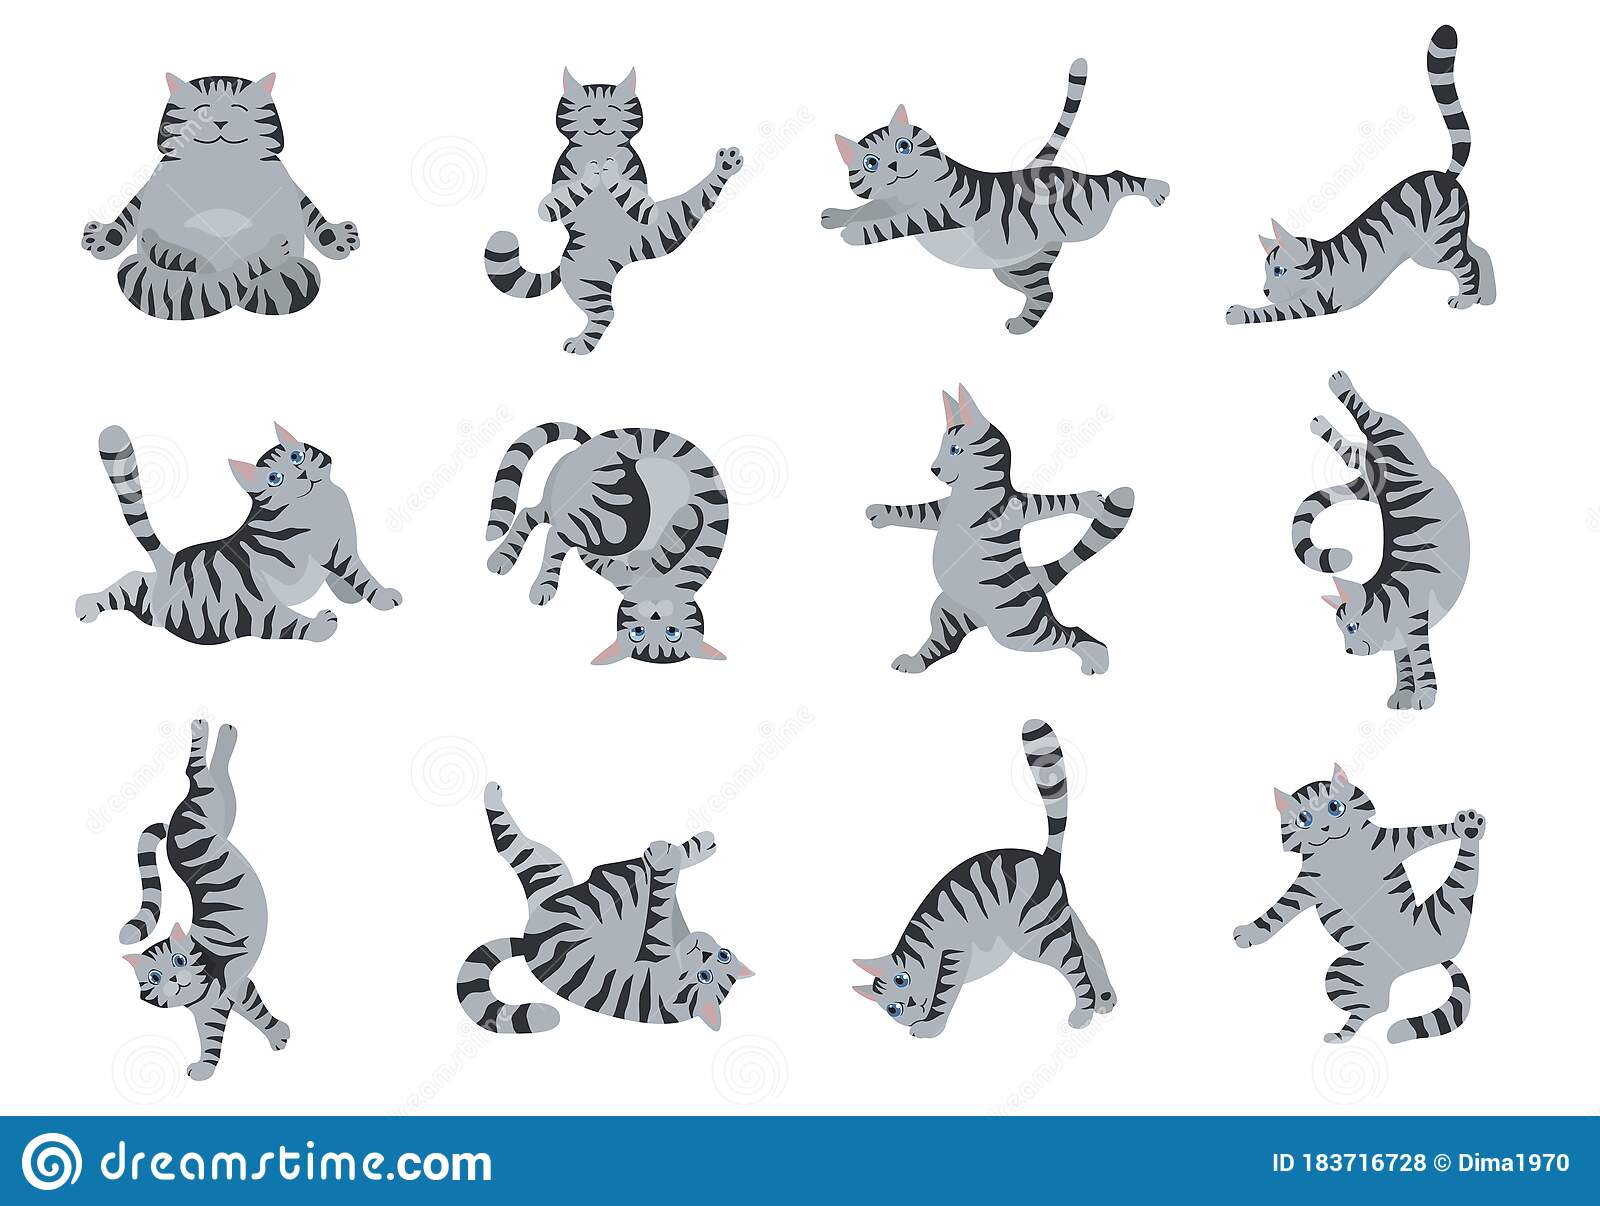 Cats Yoga Different Yoga Poses And Exercises Striped And Tabby Cat Colors Stock Vector Illustration Of Funny Clipart 183716728